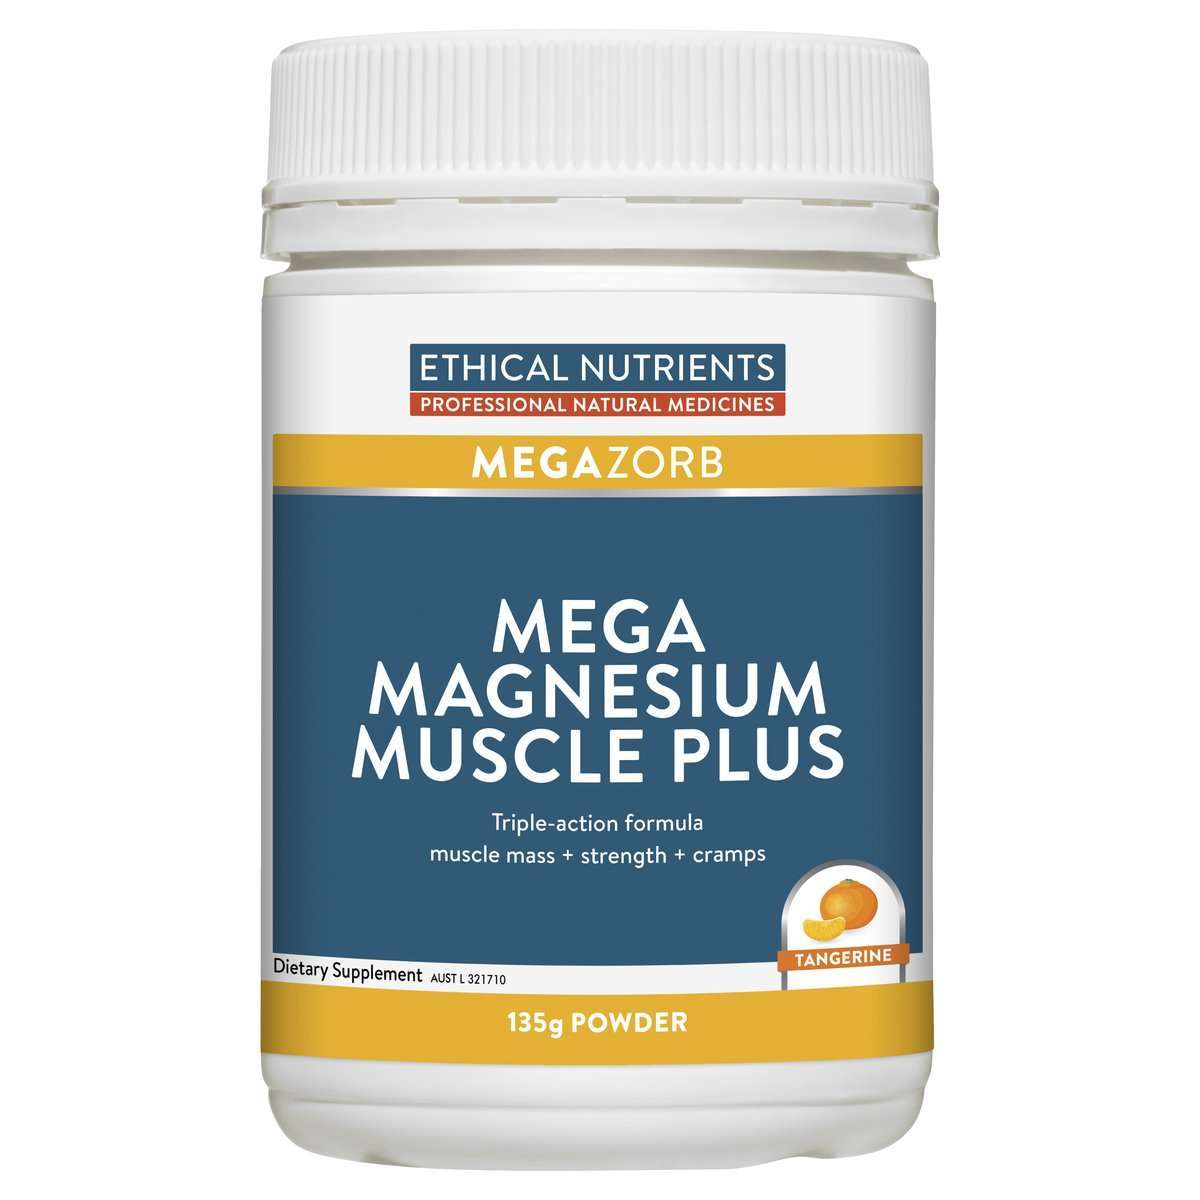 Mega Magnesium Muscle Plus